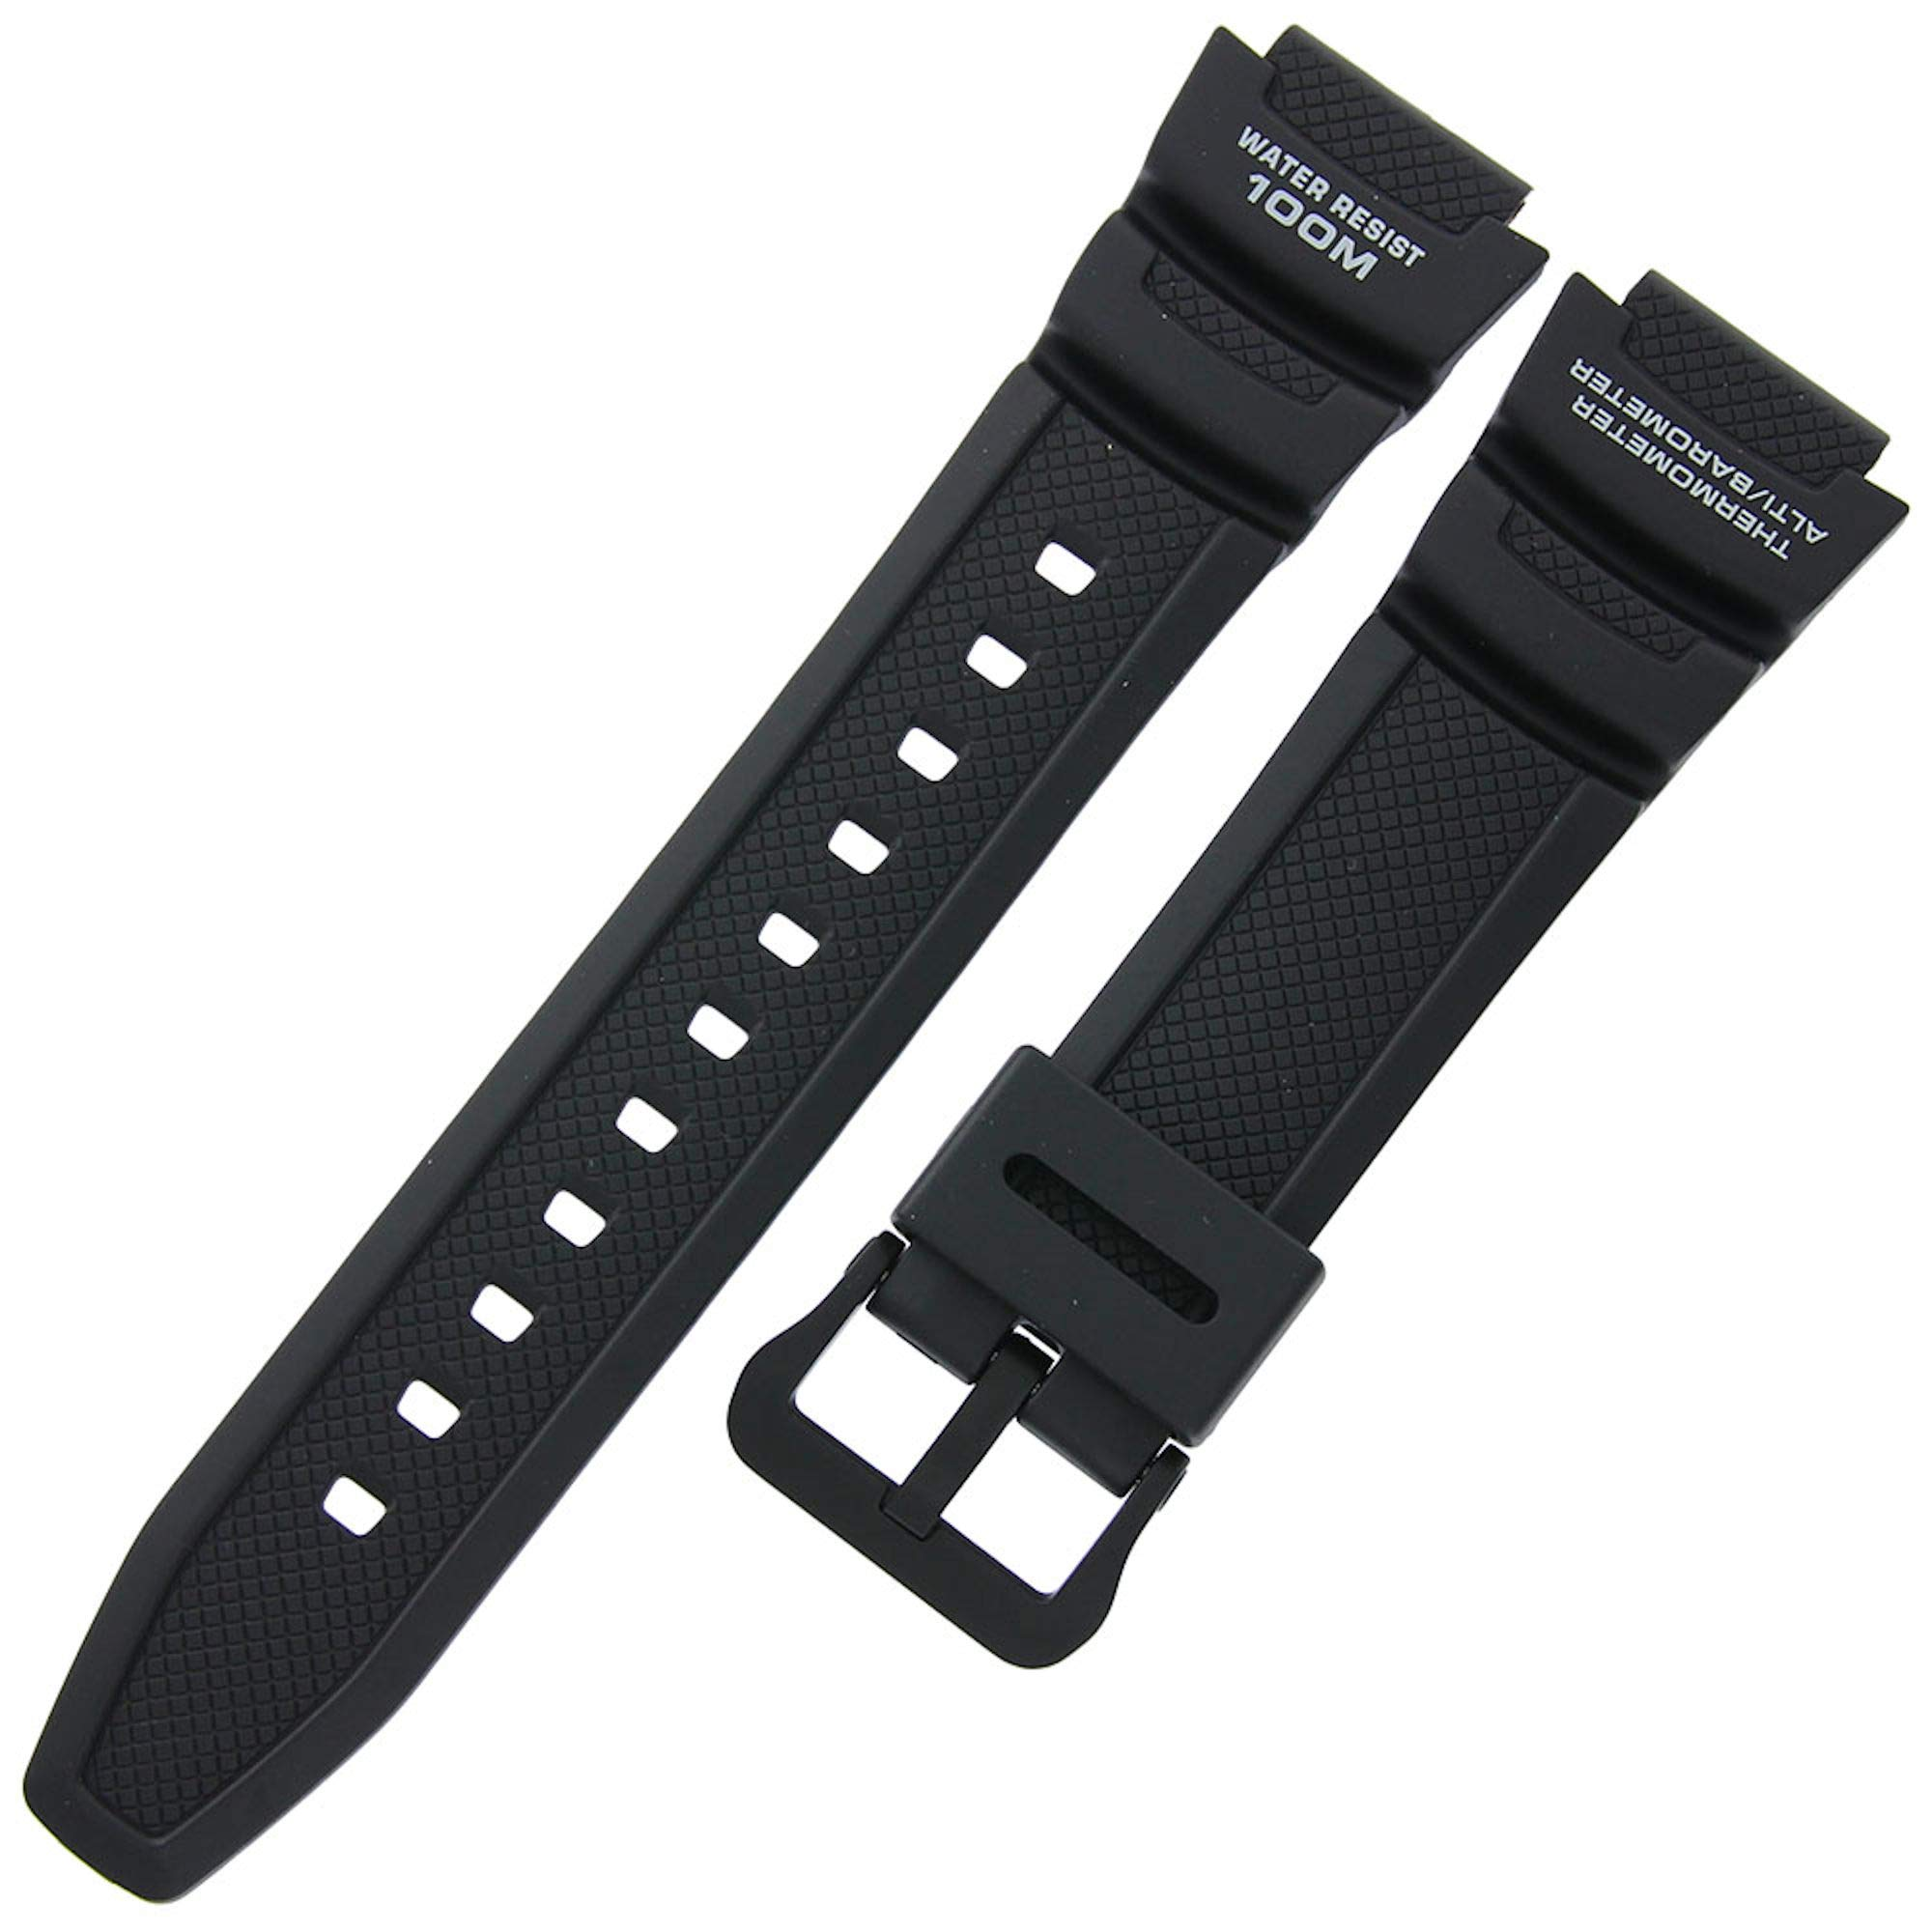 Casio #10360816 Genuine Factory Replacement Band - SGW400H-1BV, SGW300H-1AV by Casio